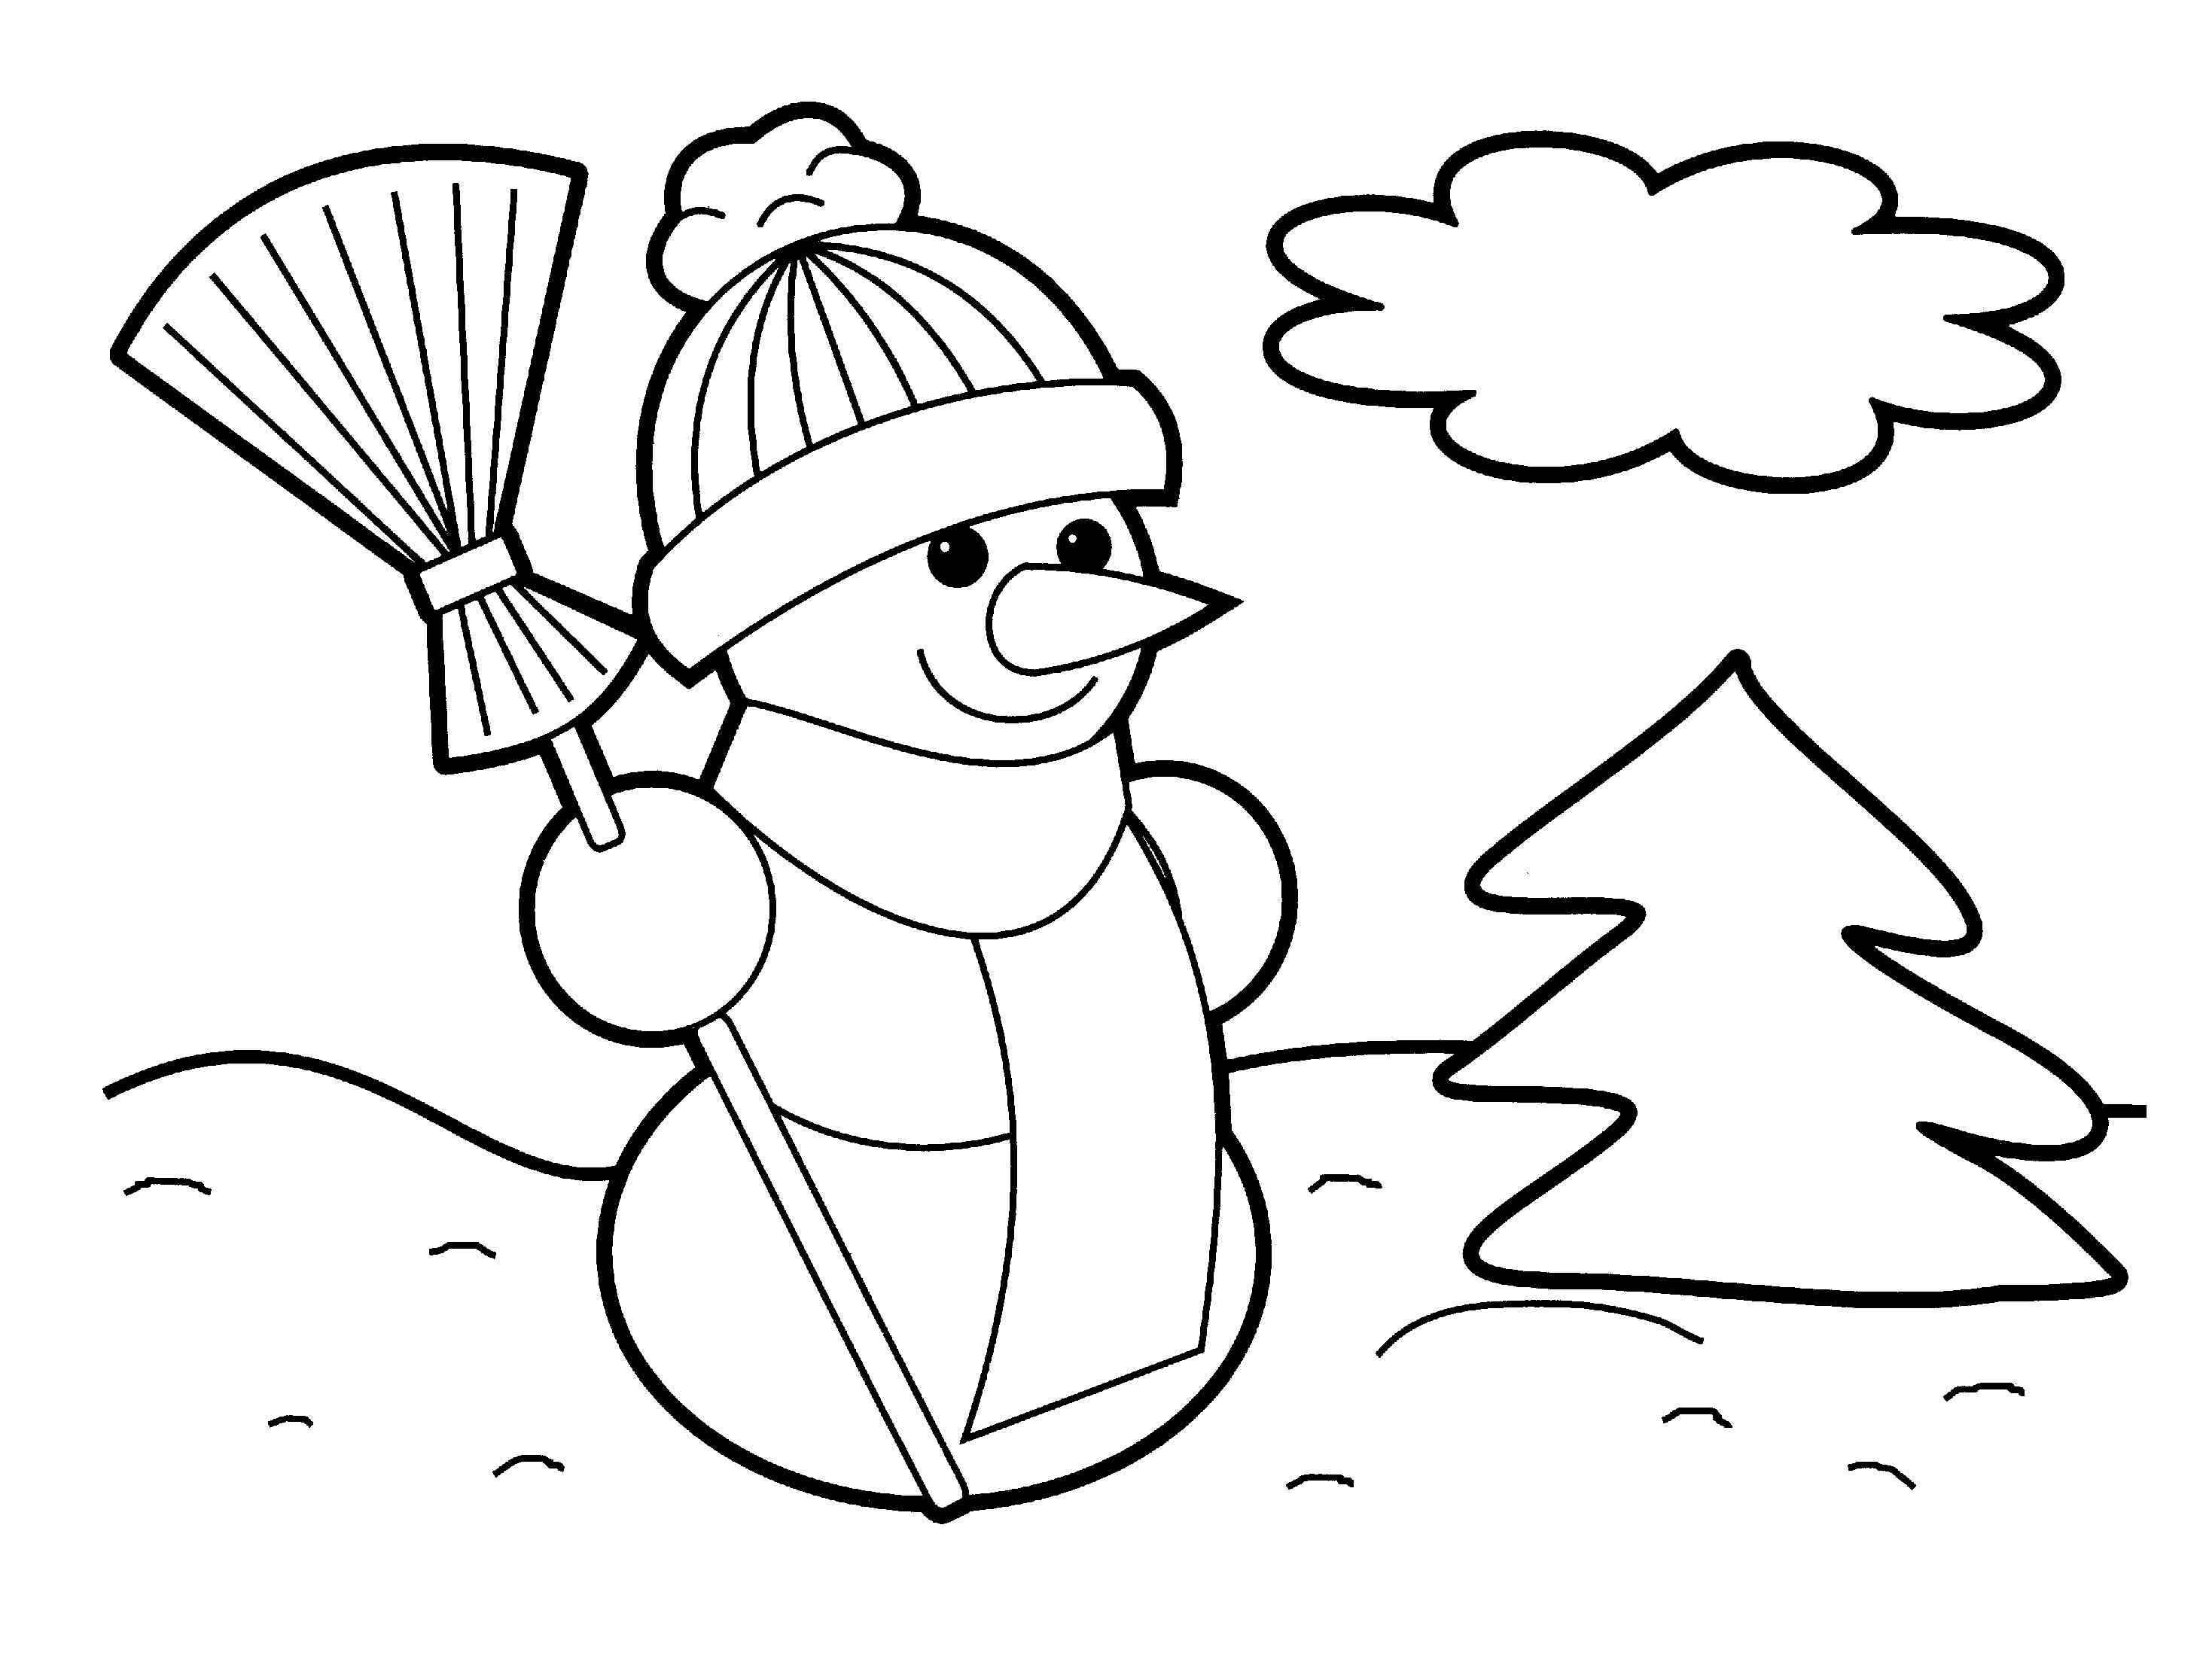 Christmas Coloring Pages Free Large Images Christmas Coloring Pages Snowman Coloring Pages Printable Christmas Coloring Pages